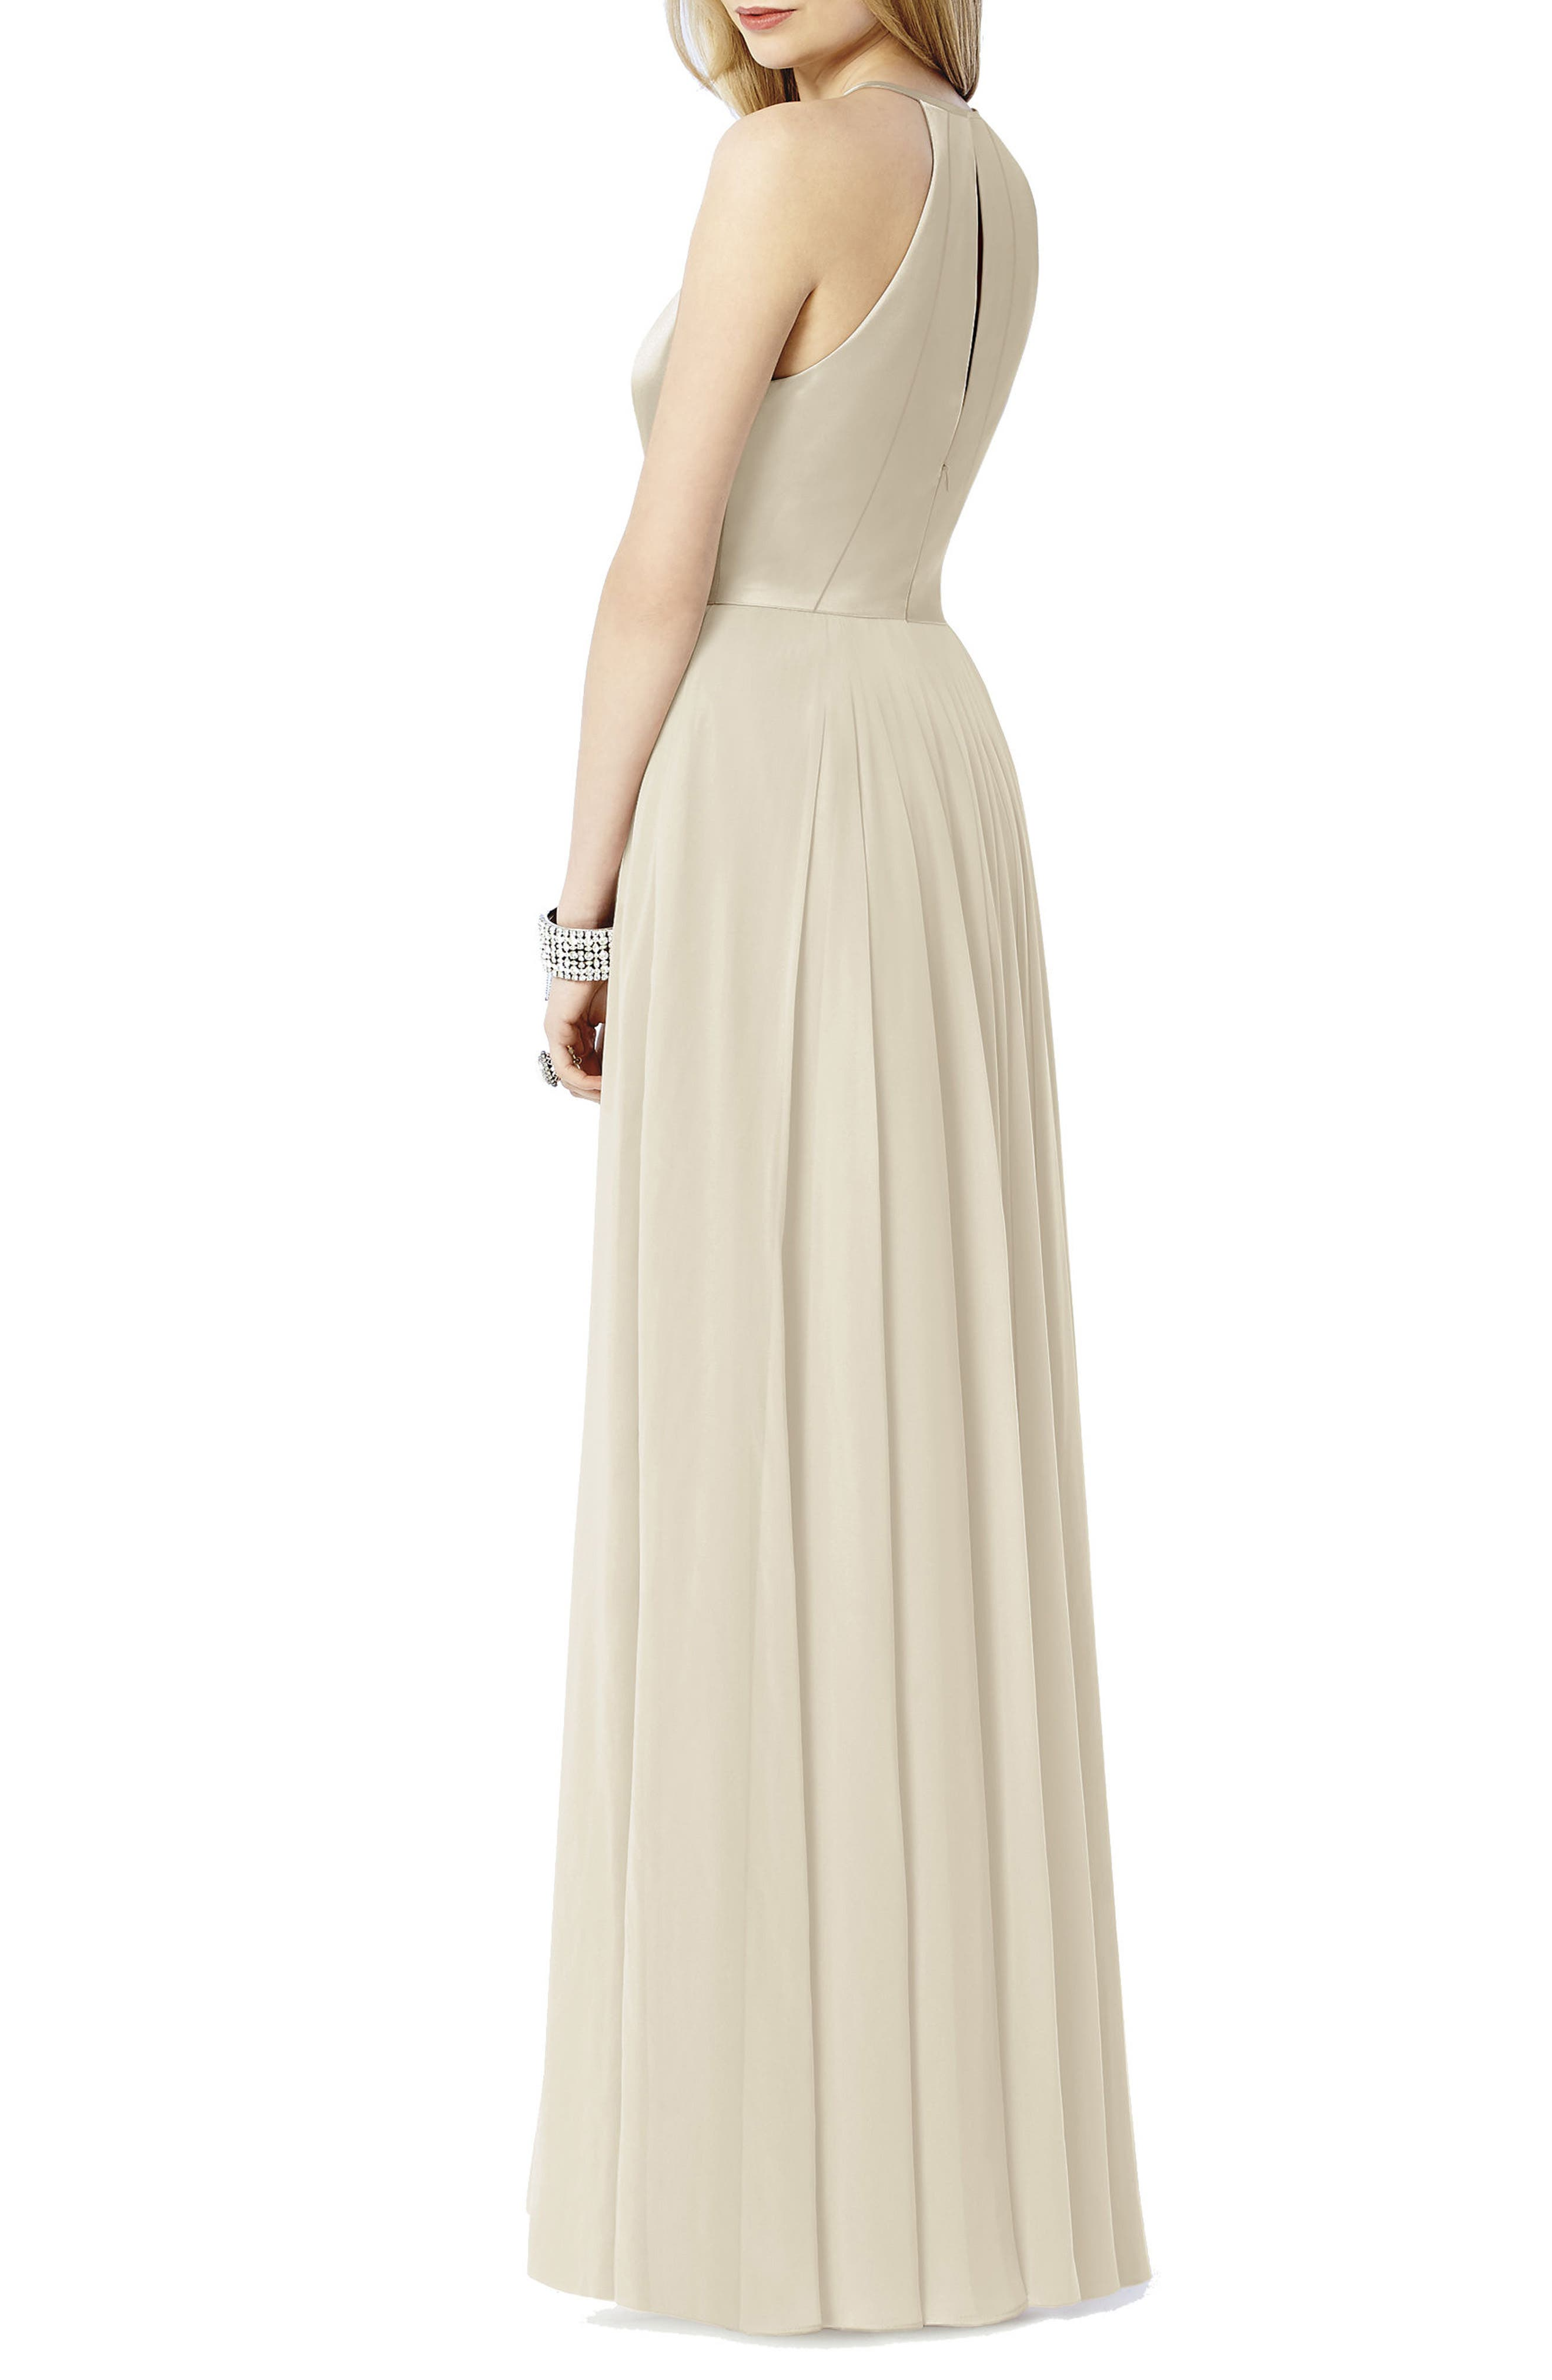 AFTER SIX, Satin & Chiffon Gown, Alternate thumbnail 2, color, PALOMINO